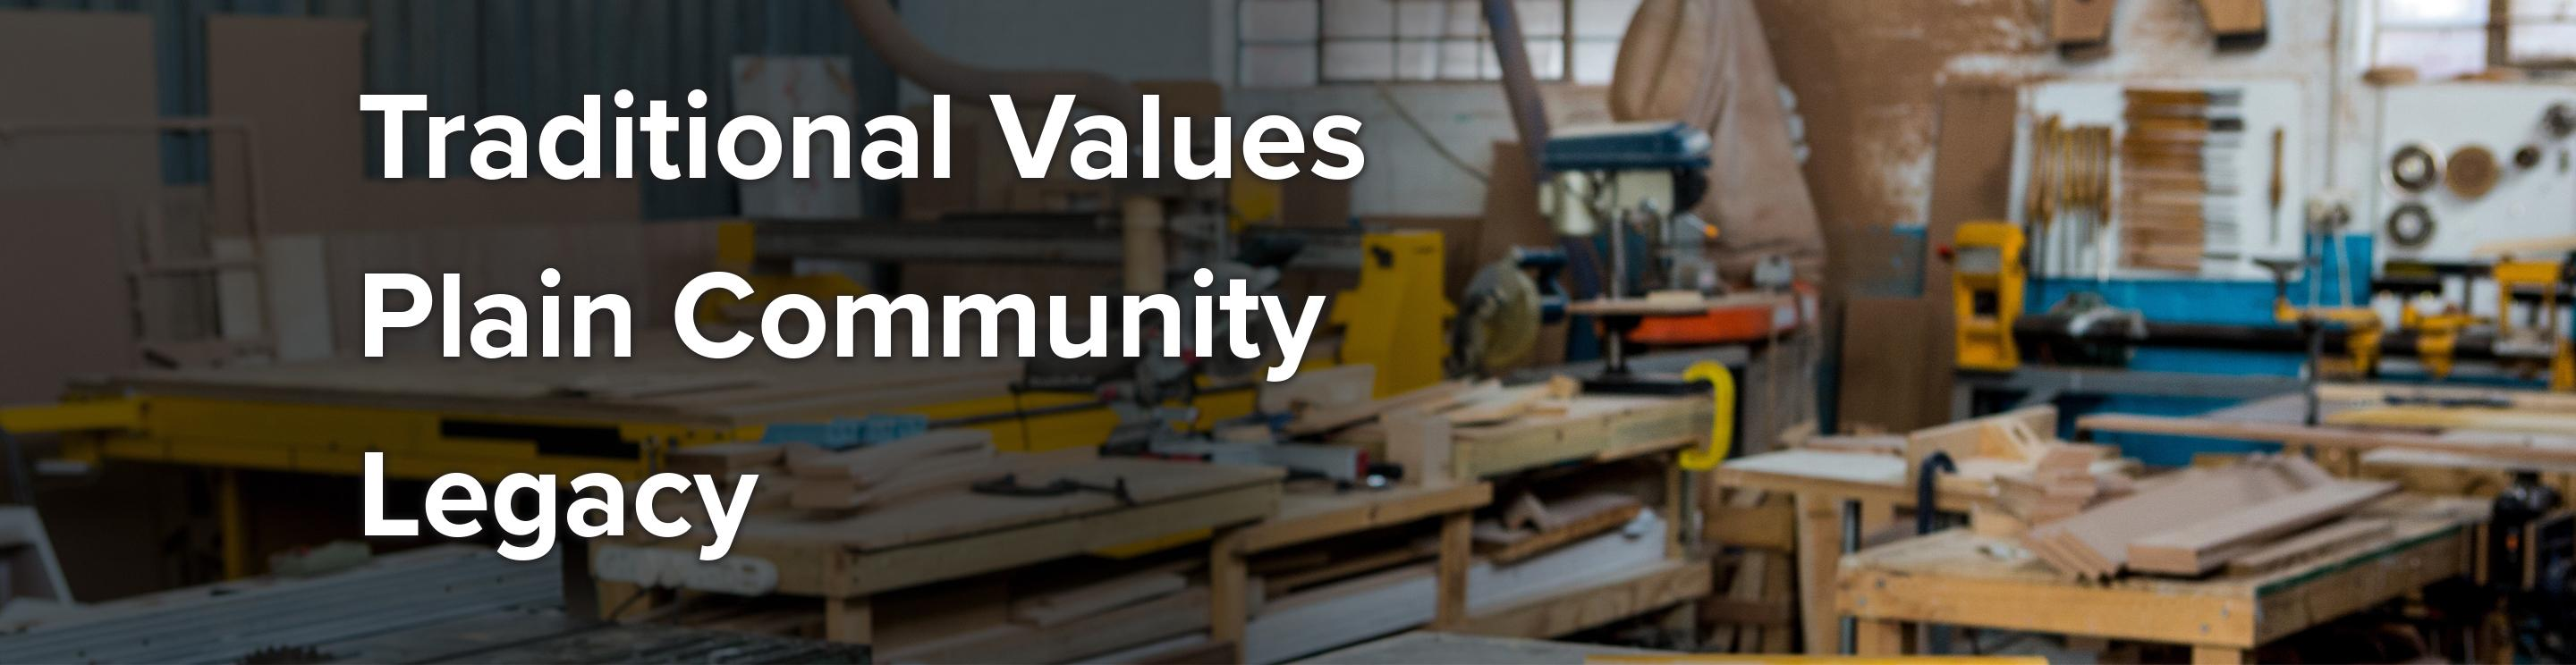 Traditional Values Plain Community Legacy - Shop picture